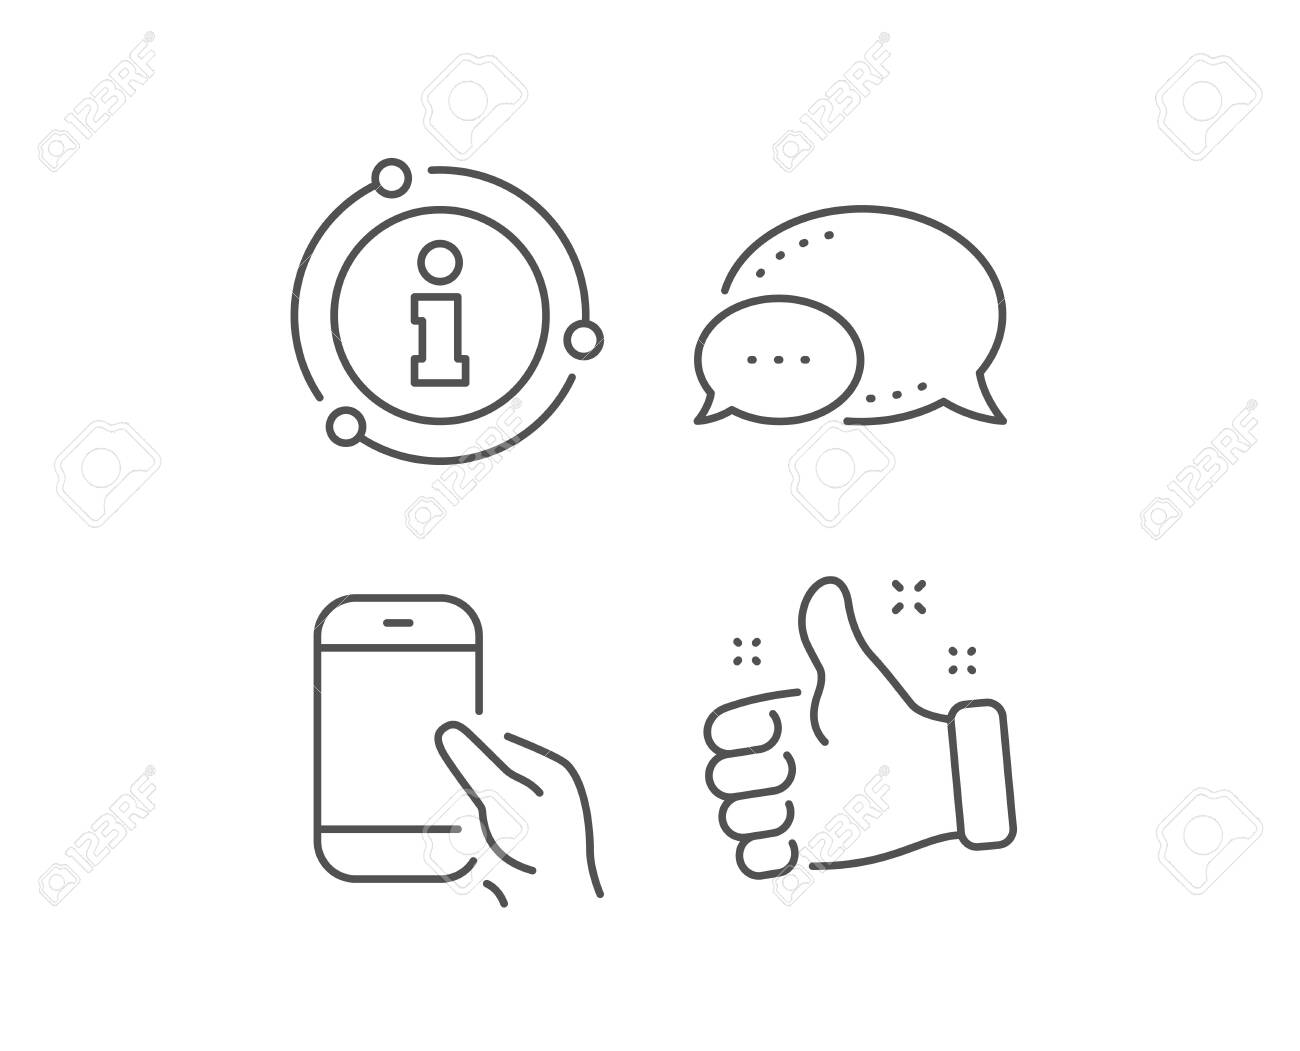 Hold Smartphone icon. Chat bubble, info sign elements. Give Cellphone or Phone sign. Ð¡ommunication Mobile device symbol. Linear hold Smartphone outline icon. Information bubble. Vector - 133836889